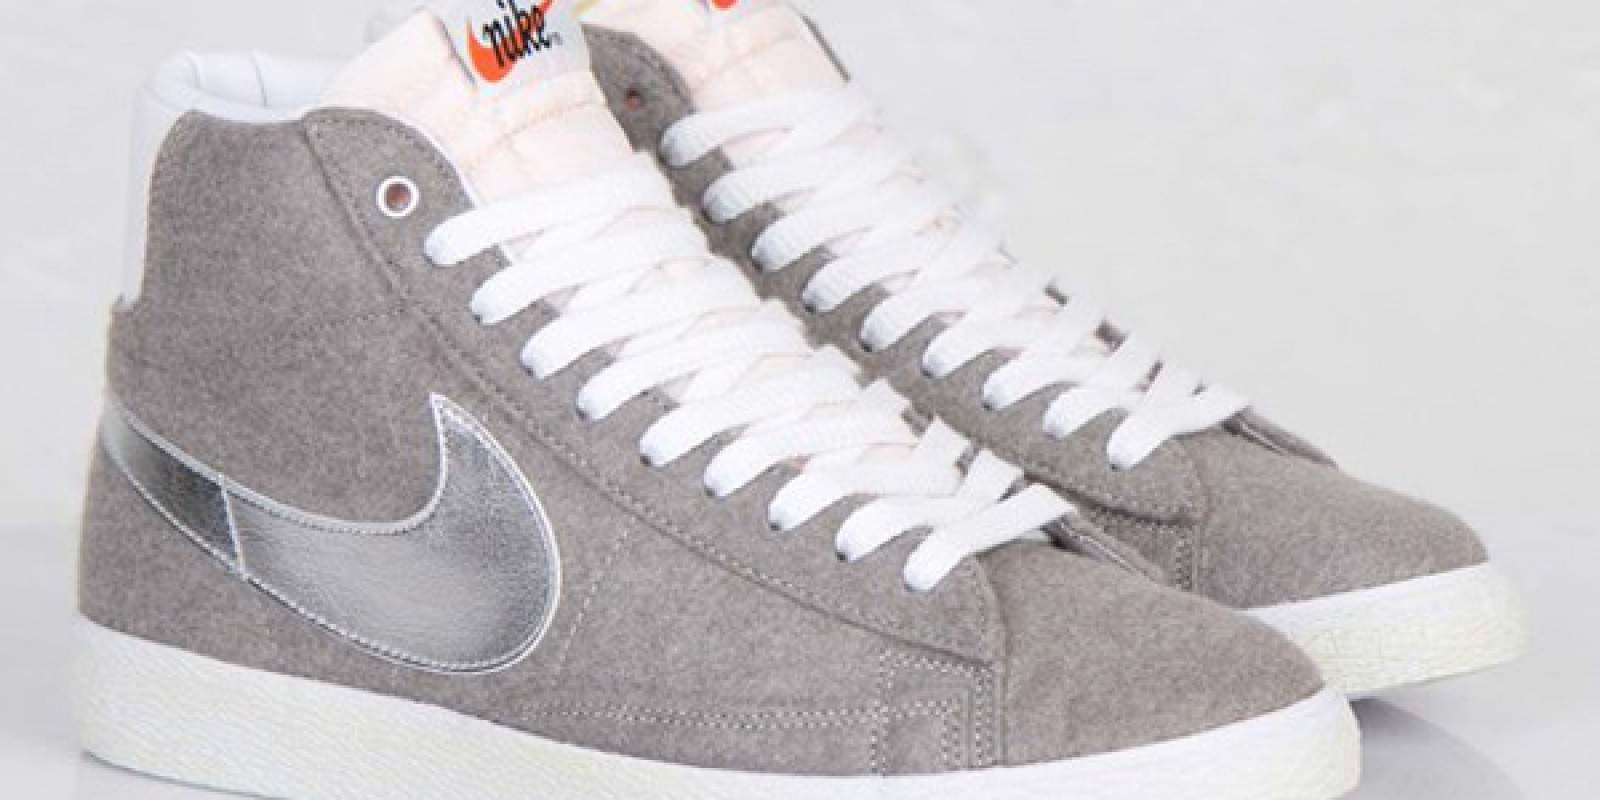 nike blazer argent roshe run pour courir. Black Bedroom Furniture Sets. Home Design Ideas